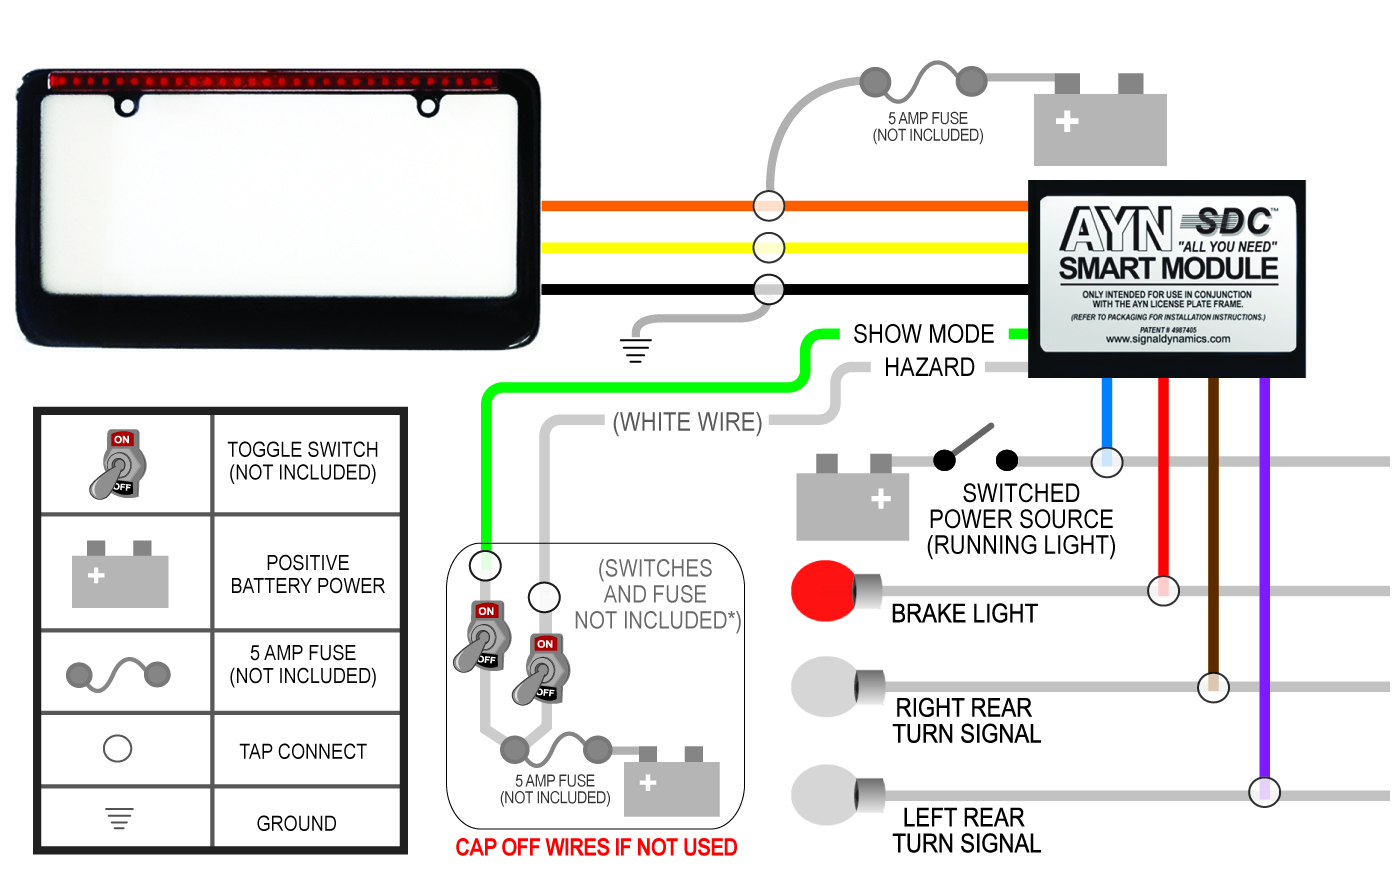 black auto wiring diagram?t=1399476781 black ayn automotive license plate frame & smart module combo Basic Turn Signal Wiring Diagram at metegol.co